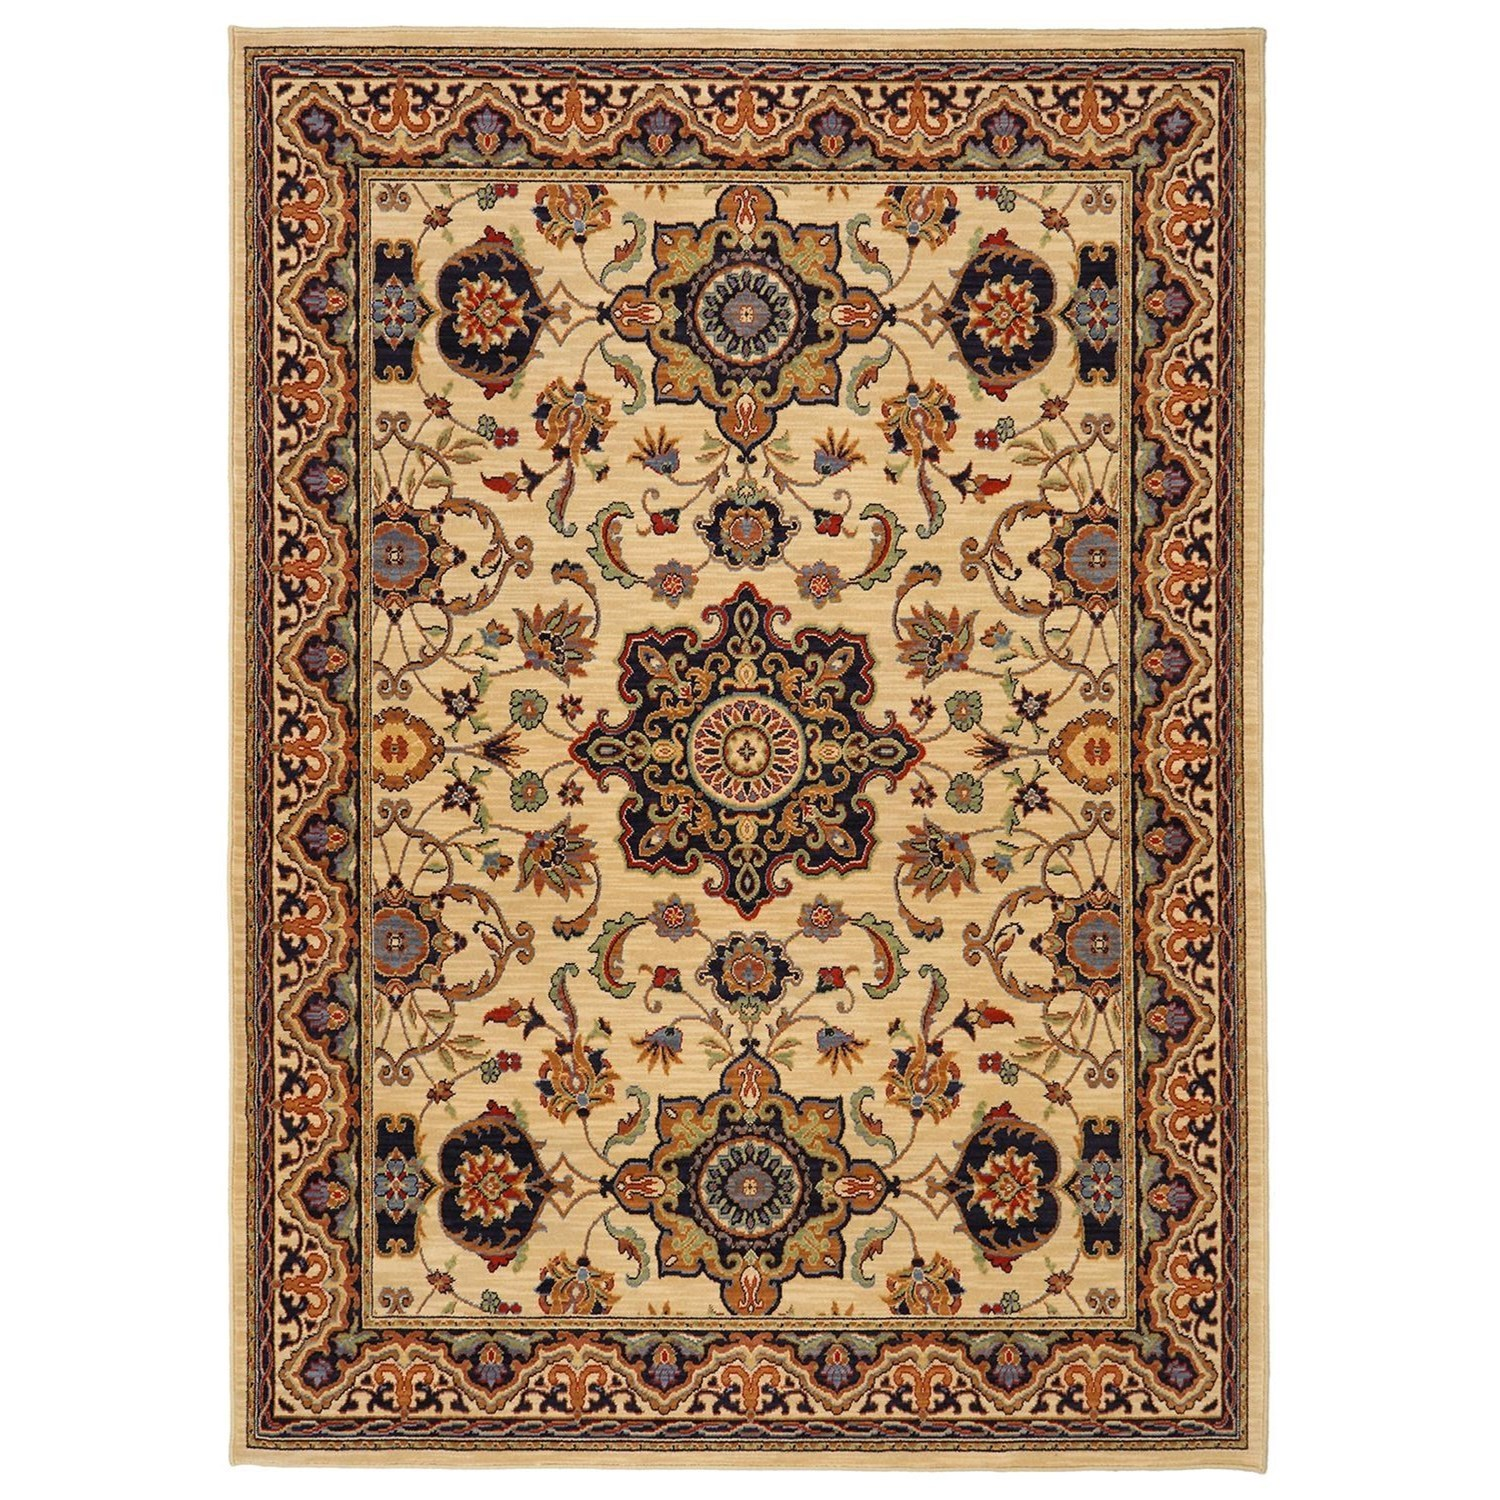 Karastan Rugs English Manor 9'2x13' Manchester Ivory Rug - Item Number: 02120 00602 110156